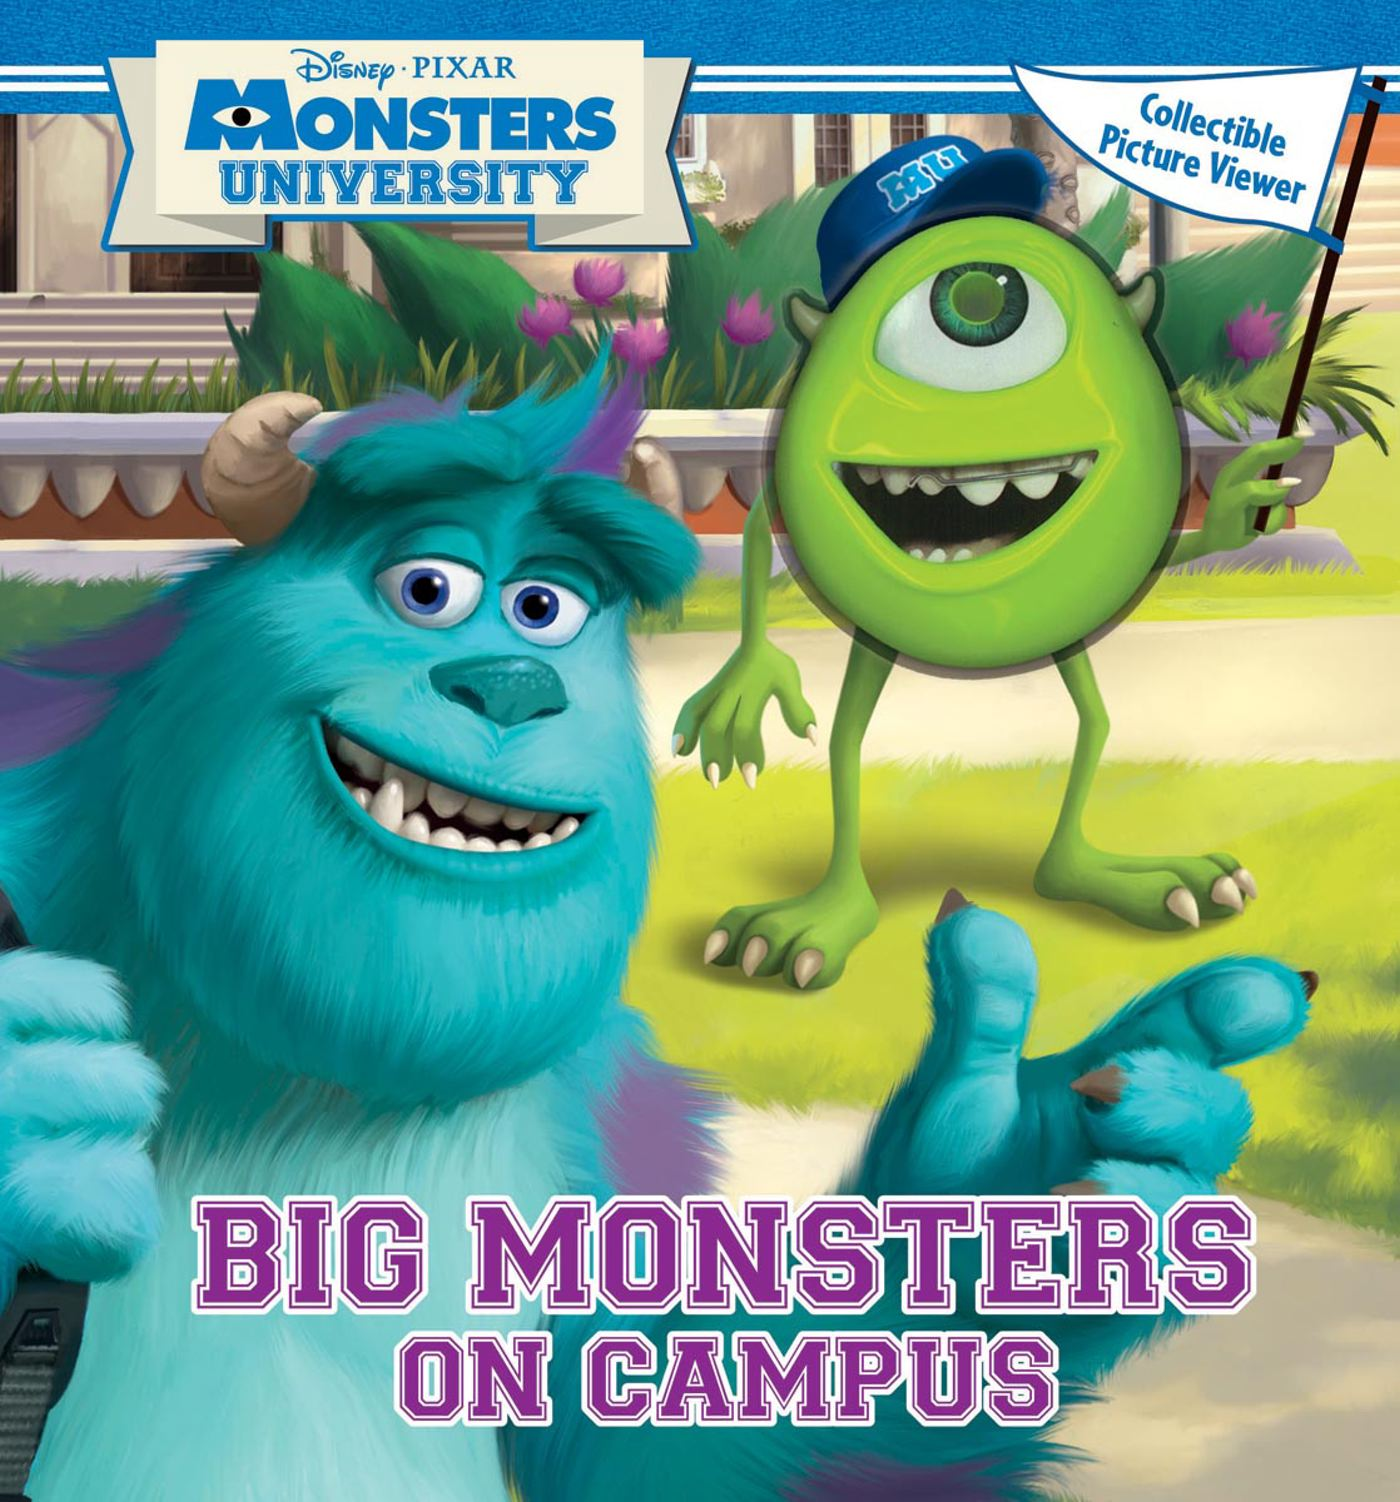 Disney pixar monsters university big monsters on campus book by disney pixar monsters university big monsters on campus 9780794427436 hr voltagebd Image collections